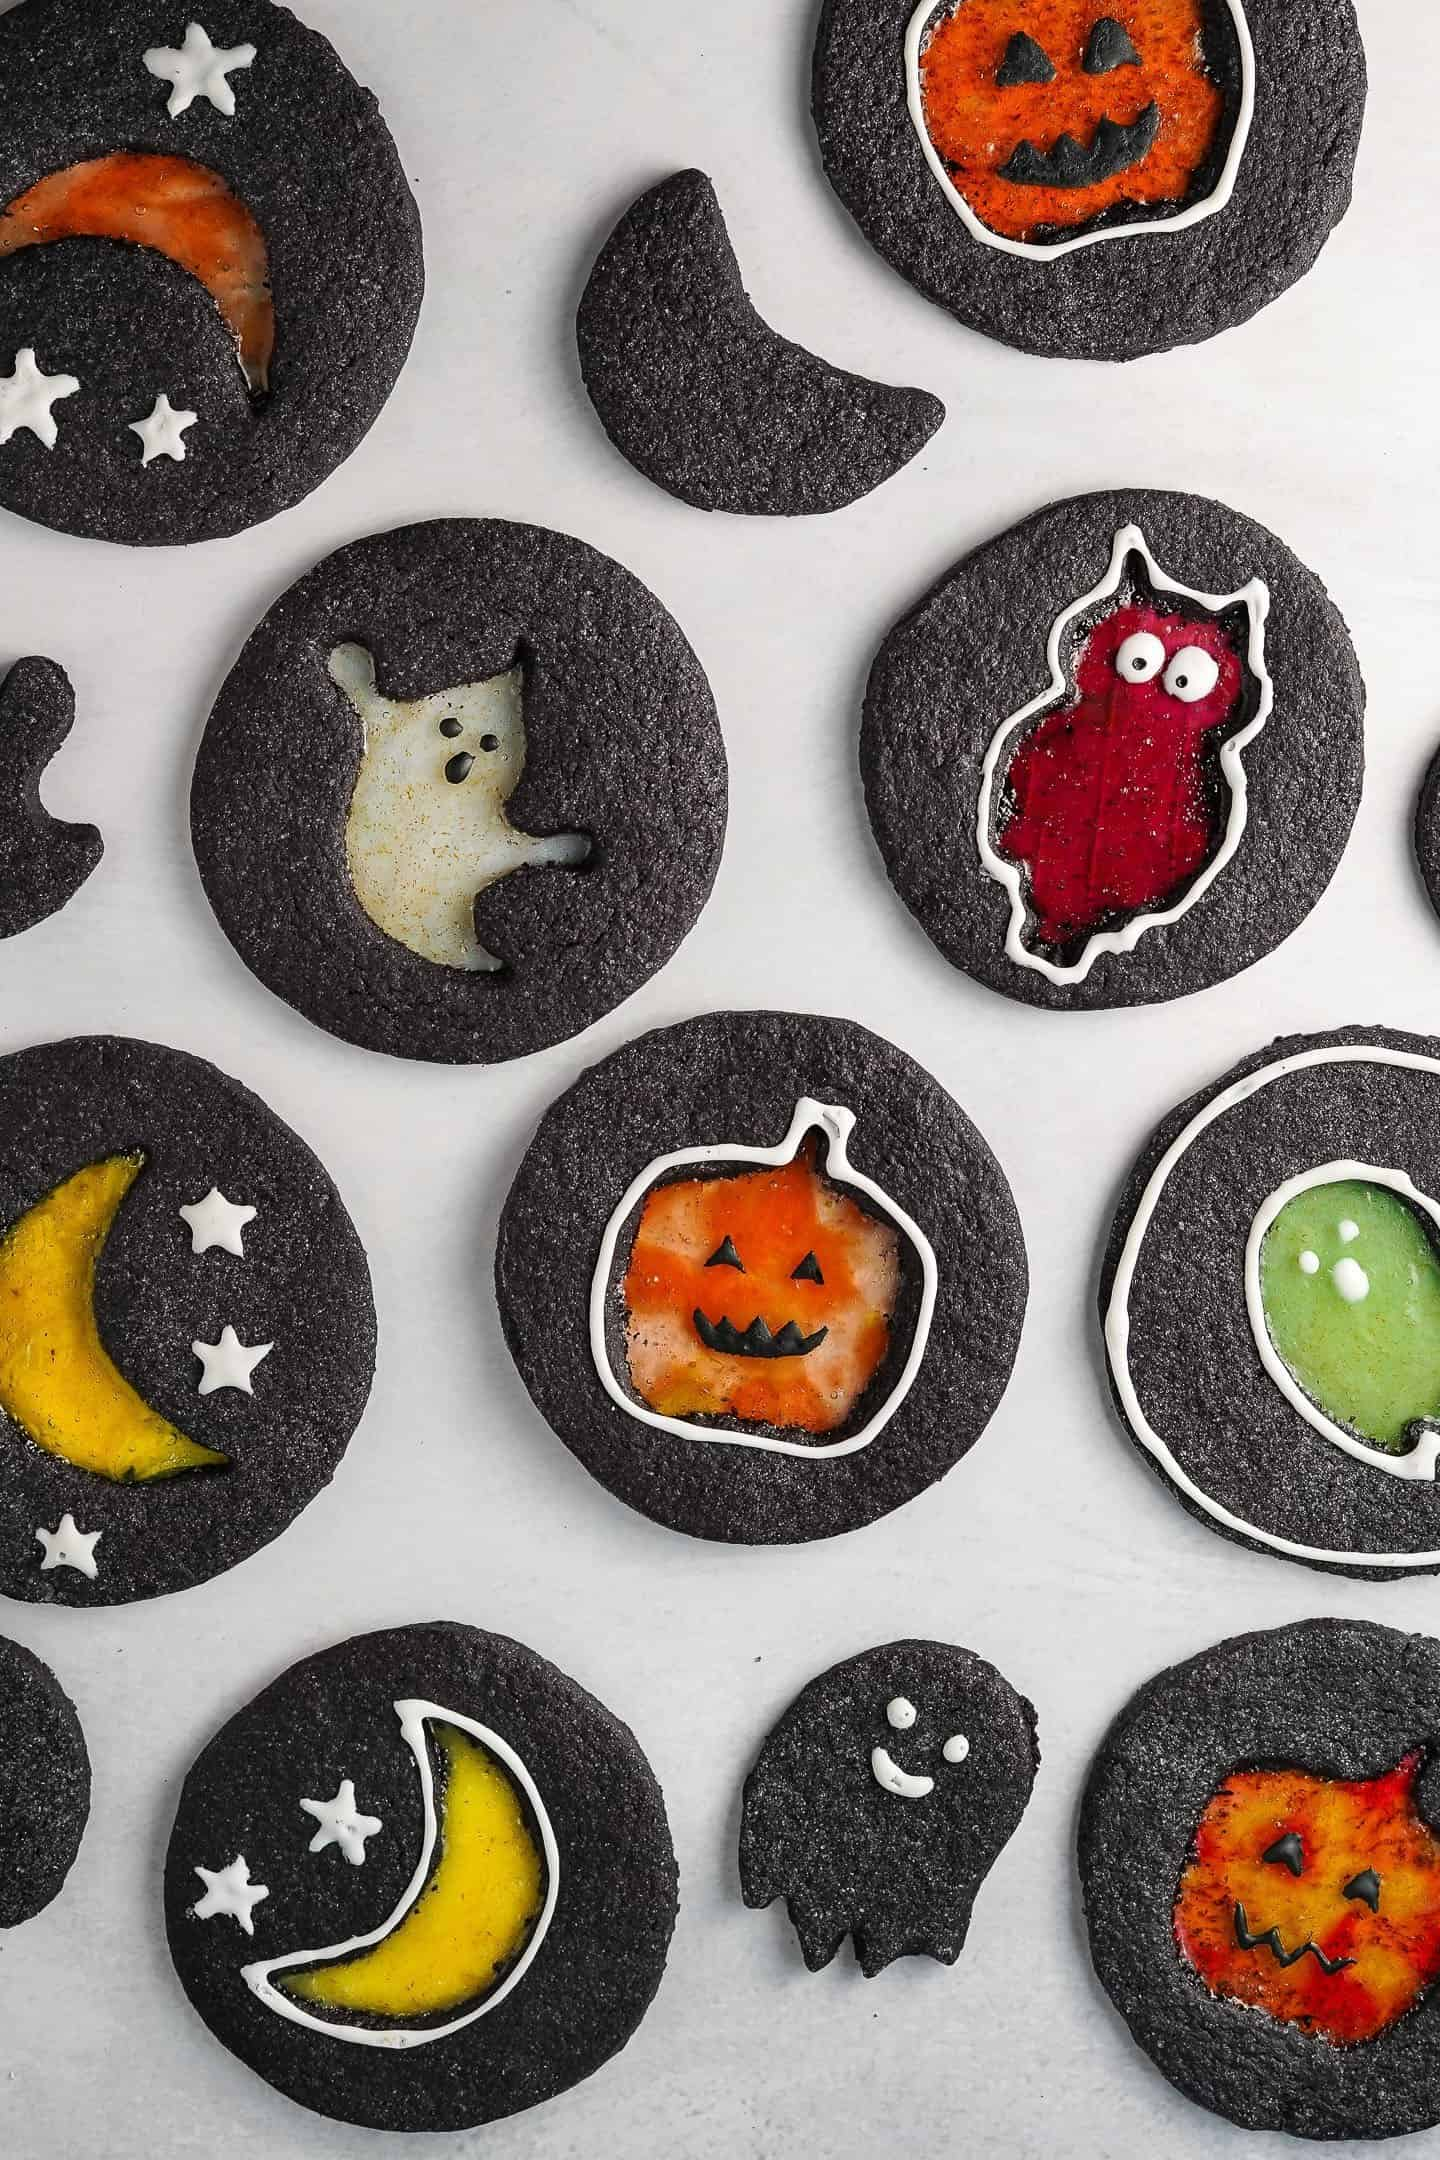 overhead view of black cookies with Halloween designs in the center laying on white surface